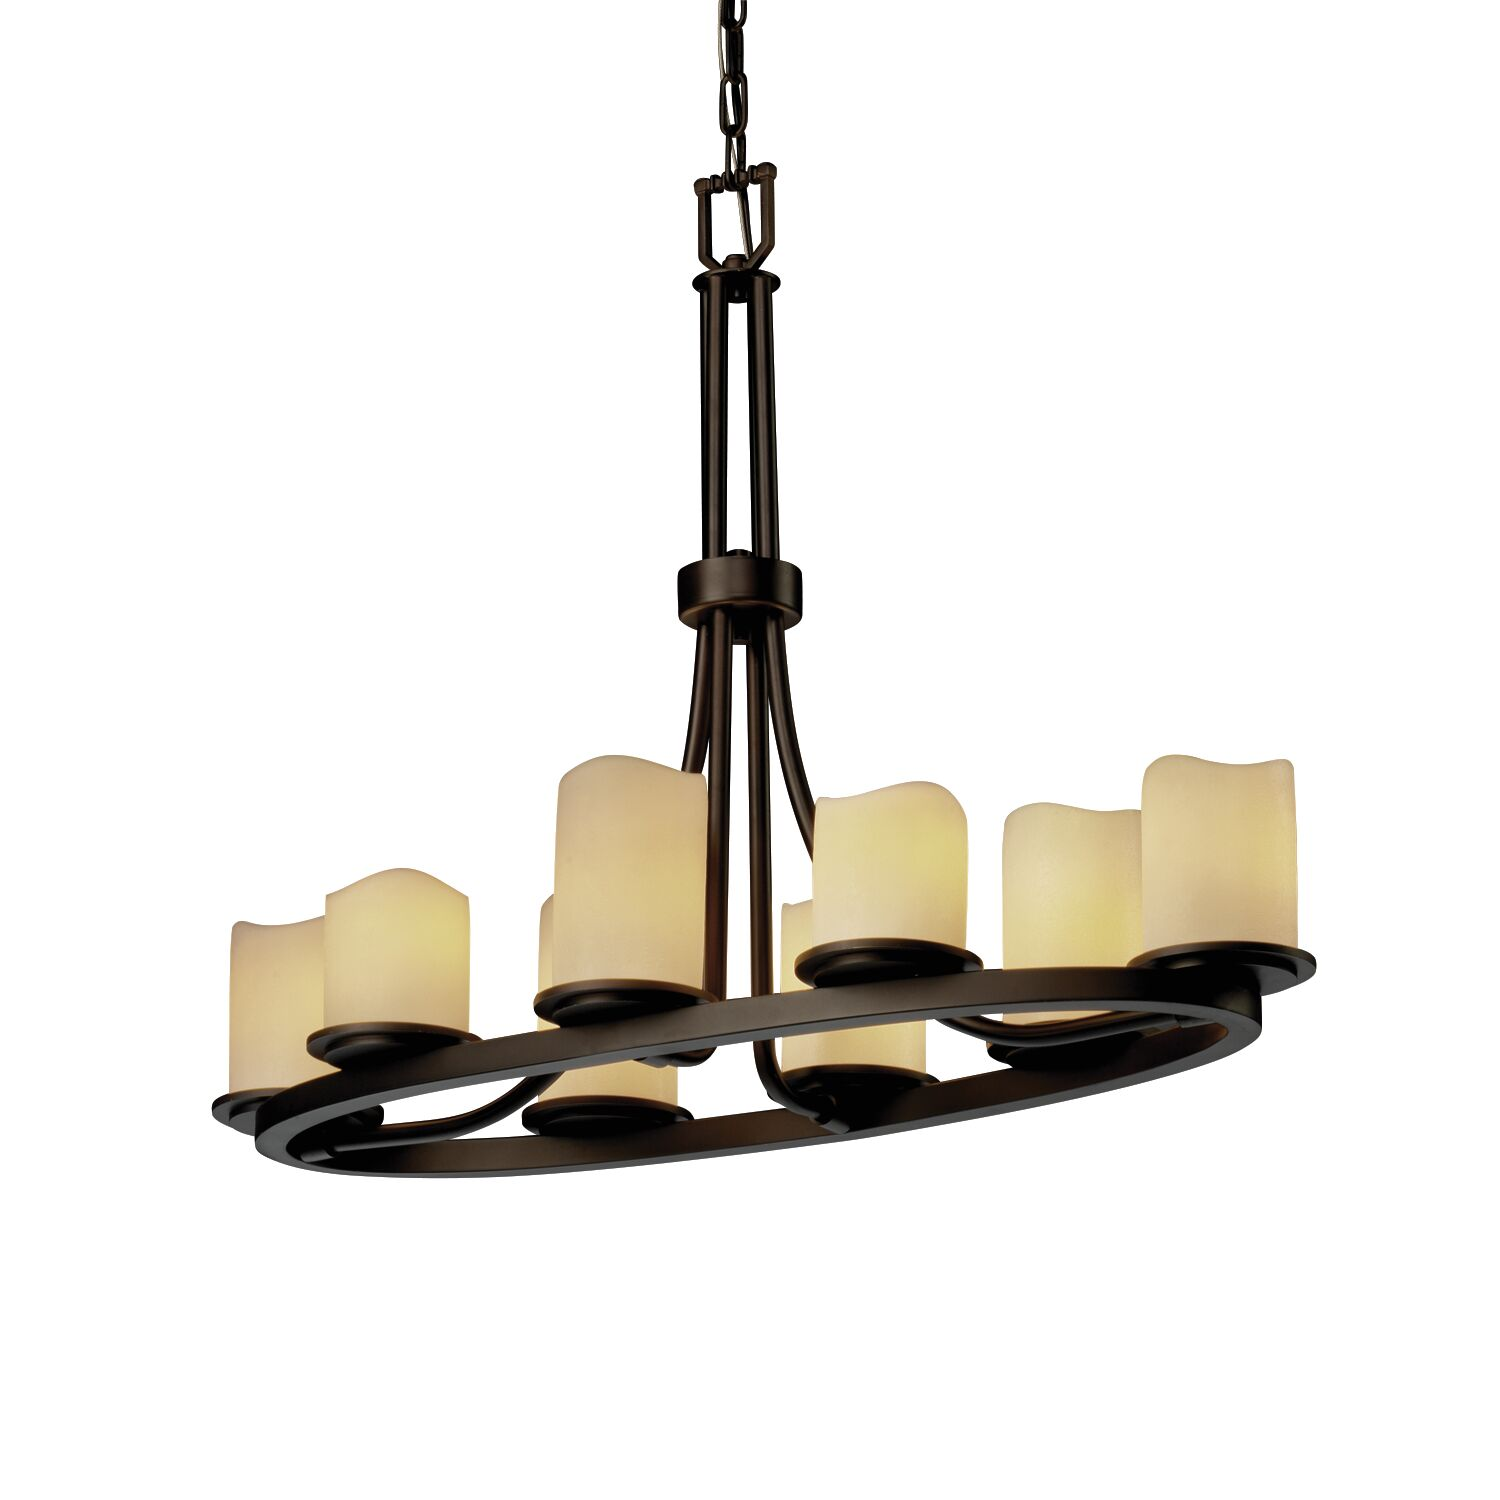 Phaedra 8-Light Oval Kitchen Island Pendant Shade Option: Cylinder with Melted Rim, Shade Color: Cream, Metal Finish: Matte Black